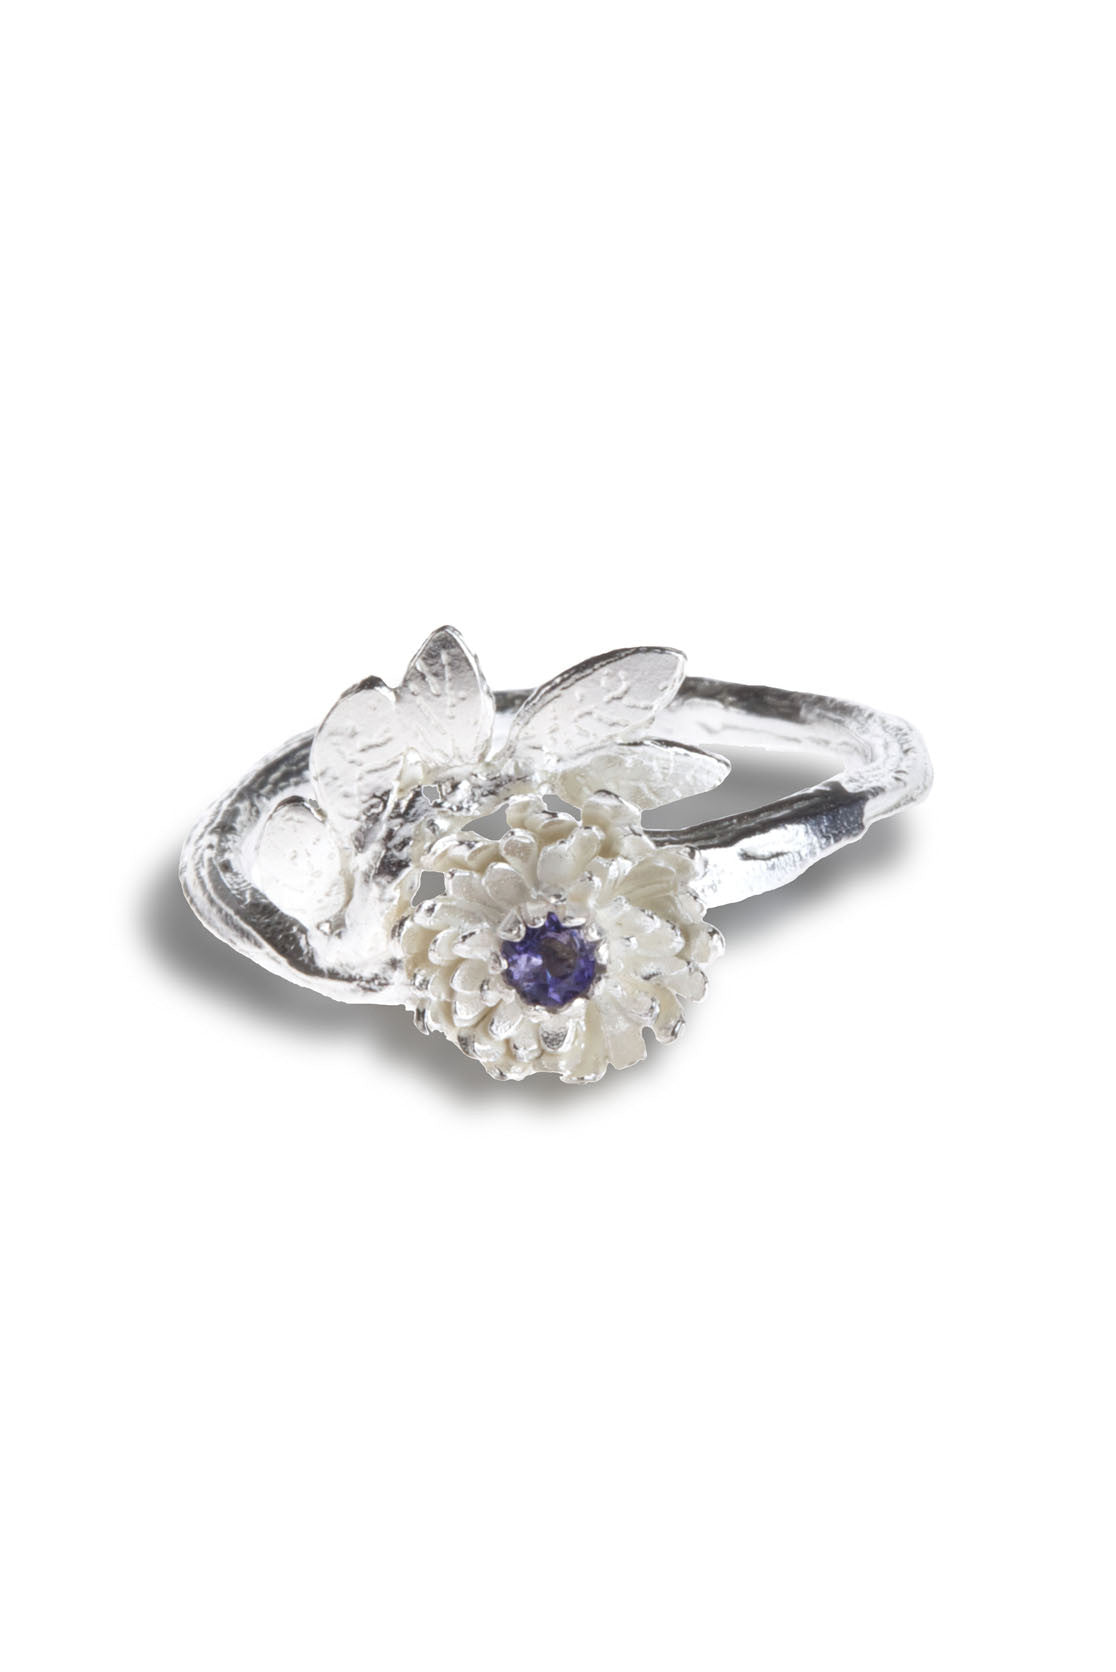 925 Sterling SIlver with iolite